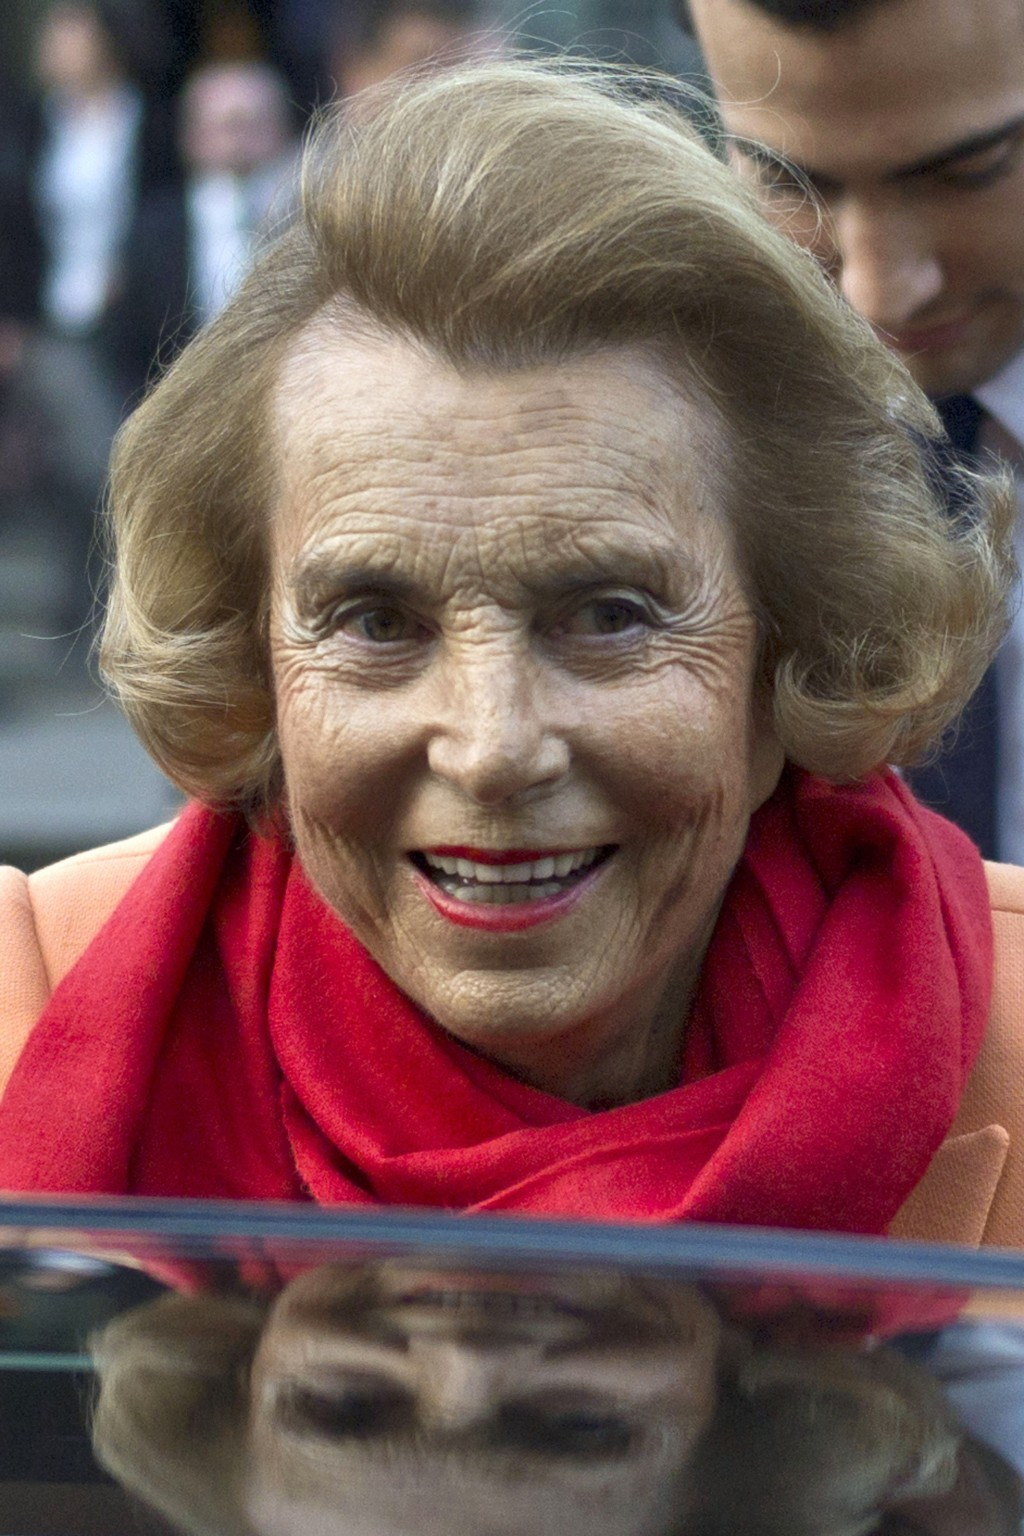 FILE - In this March 29, 2012 file photo, L'Oreal heiress Liliane Bettencourt leaves the L'Oreal-UNESCO prize for the women in science, in Paris, Fran...